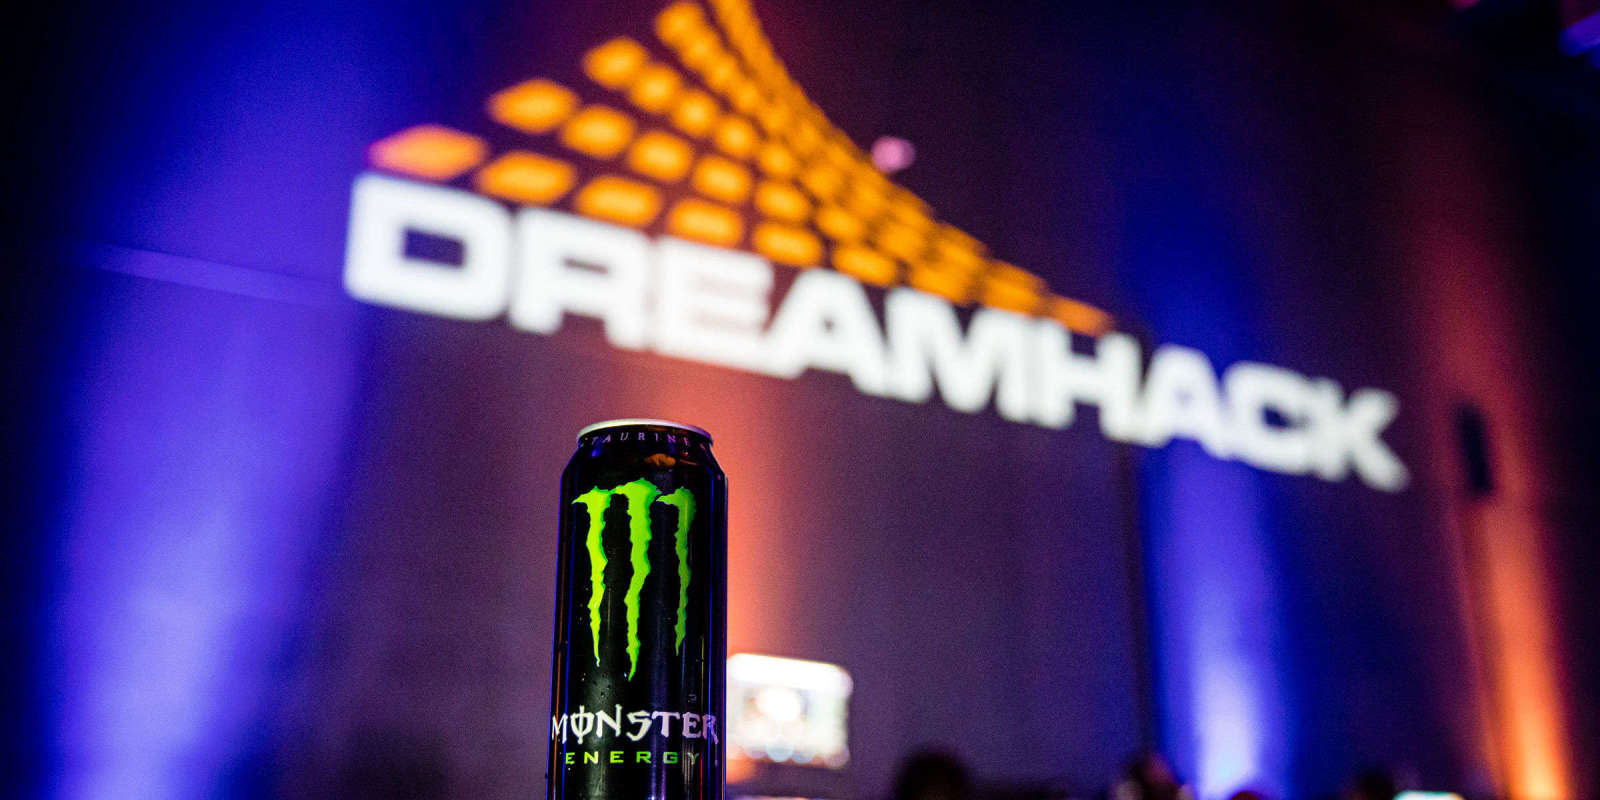 Photos from day 3 of Dreamhack 2019